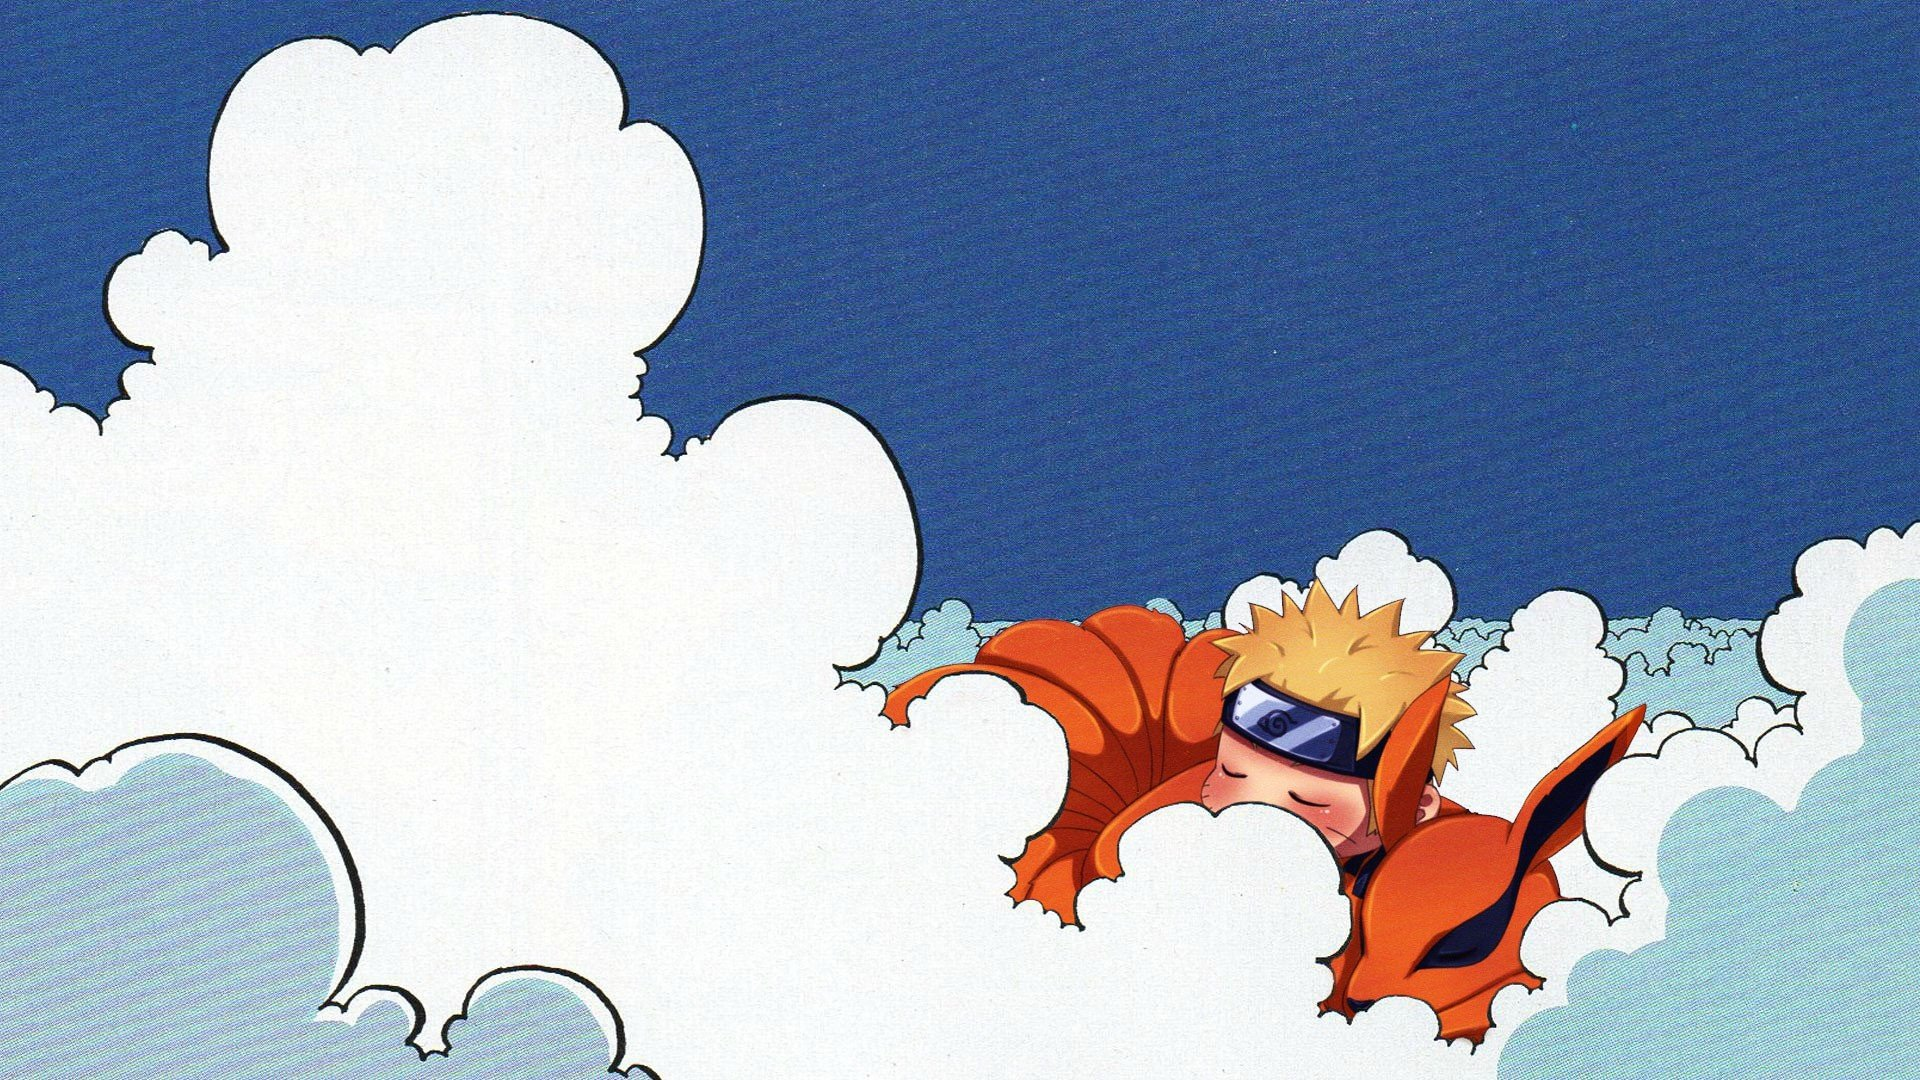 Naruto Shippuuden, Kyuubi, Uzumaki Naruto, Clouds, Minimalism, Blue eyes, Sleeping, Animals, Fox Wallpaper